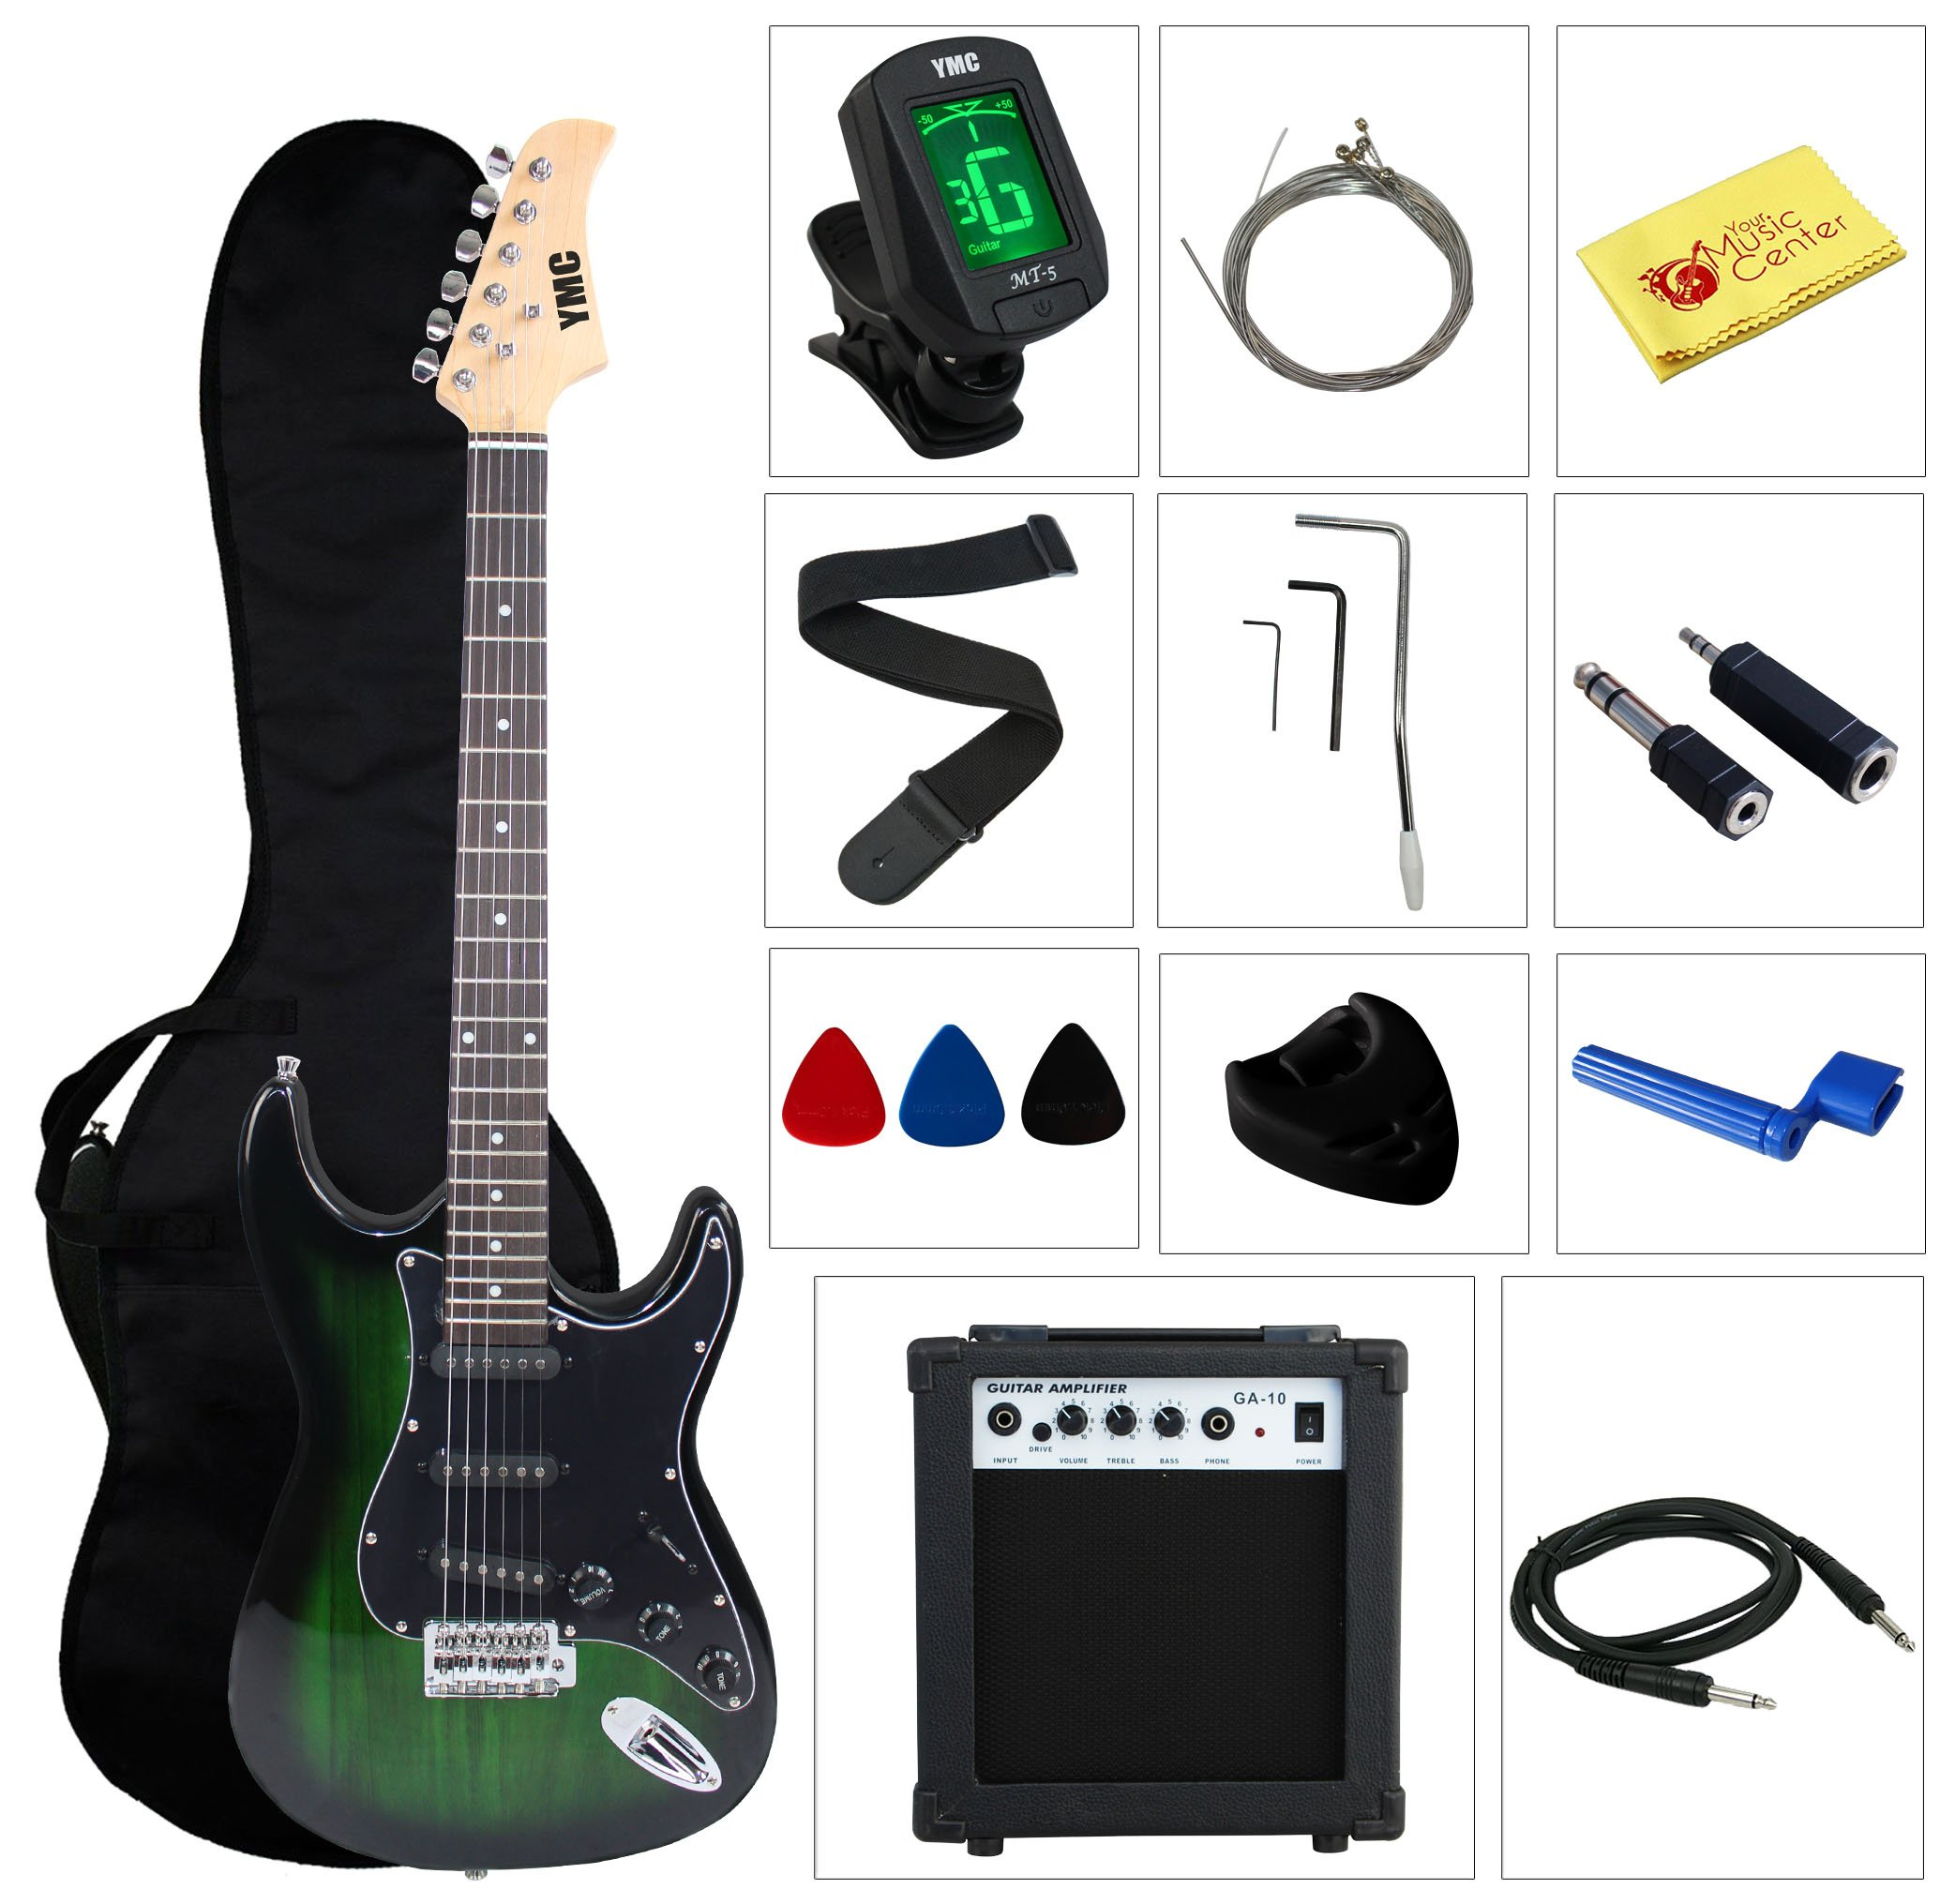 Stedman Pro EG39-TGRB-10W Beginner Series Electric Guitar with Case, Strap, Cable, Capo, Picks, Electronic Tuner, String Winder and Polish Cloth, 10W Amp, Transparent Green/Black Picguard by Stedman Pro